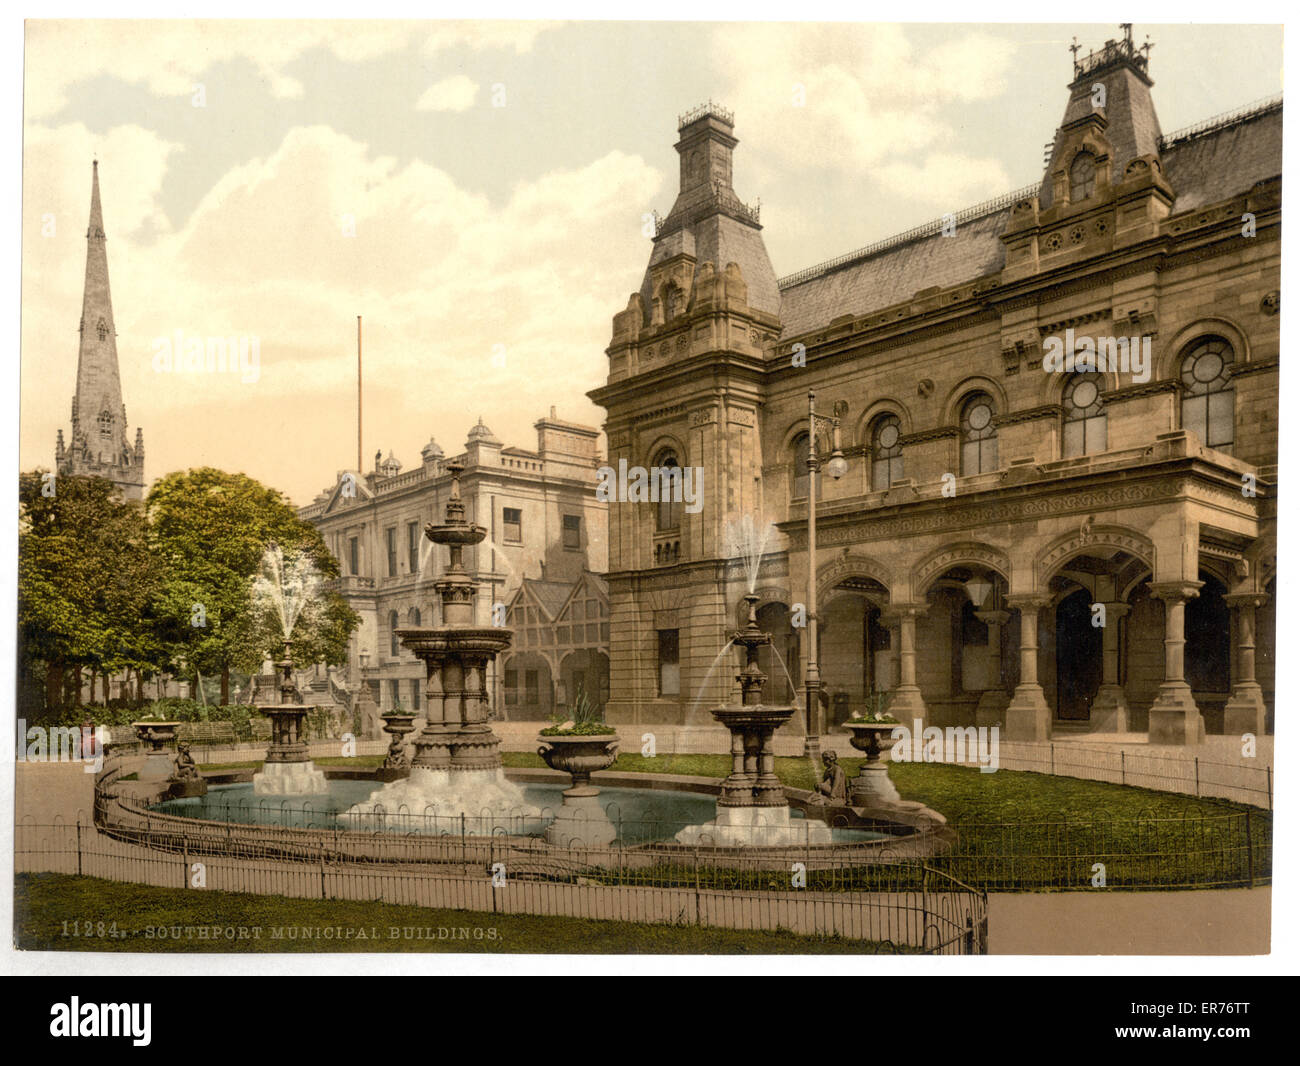 Municipal buildings, Southport, England. Date between ca. 1890 and ca. 1900. - Stock Image